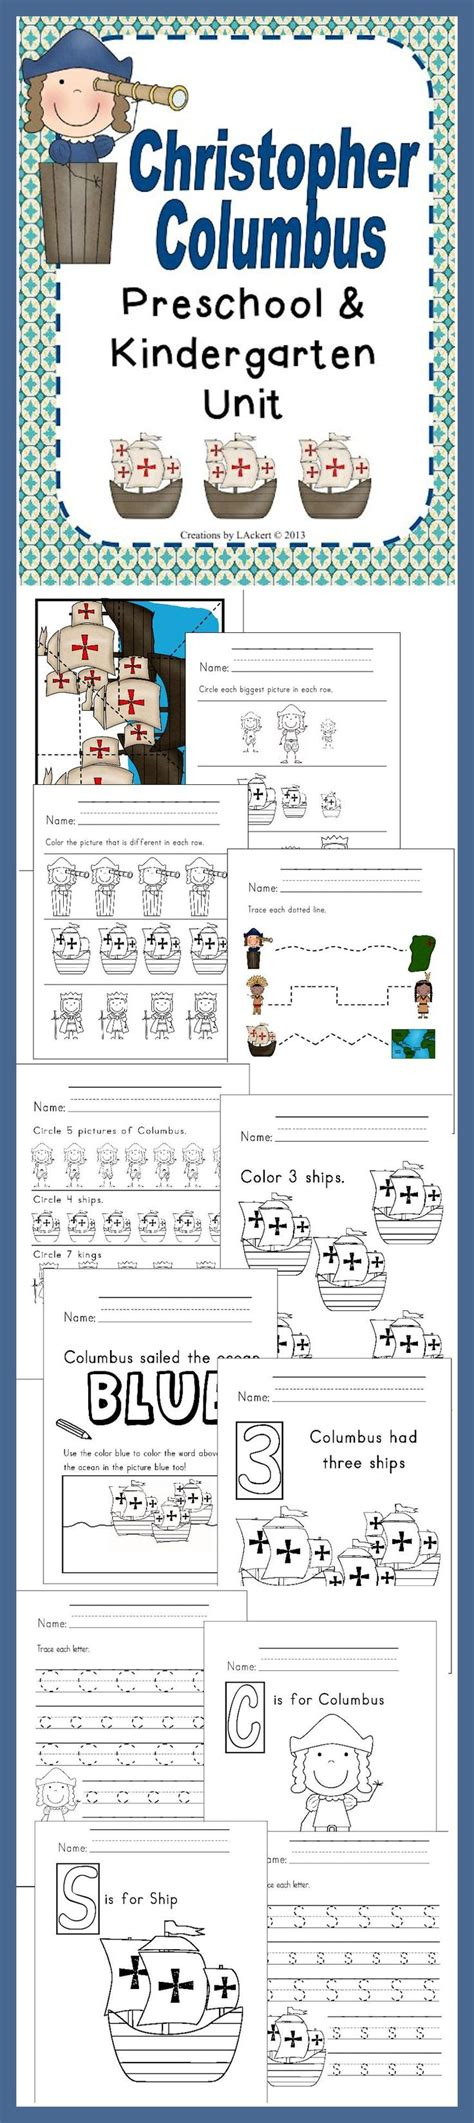 christopher columbus kindergarten unit that includes different worksheets and acti